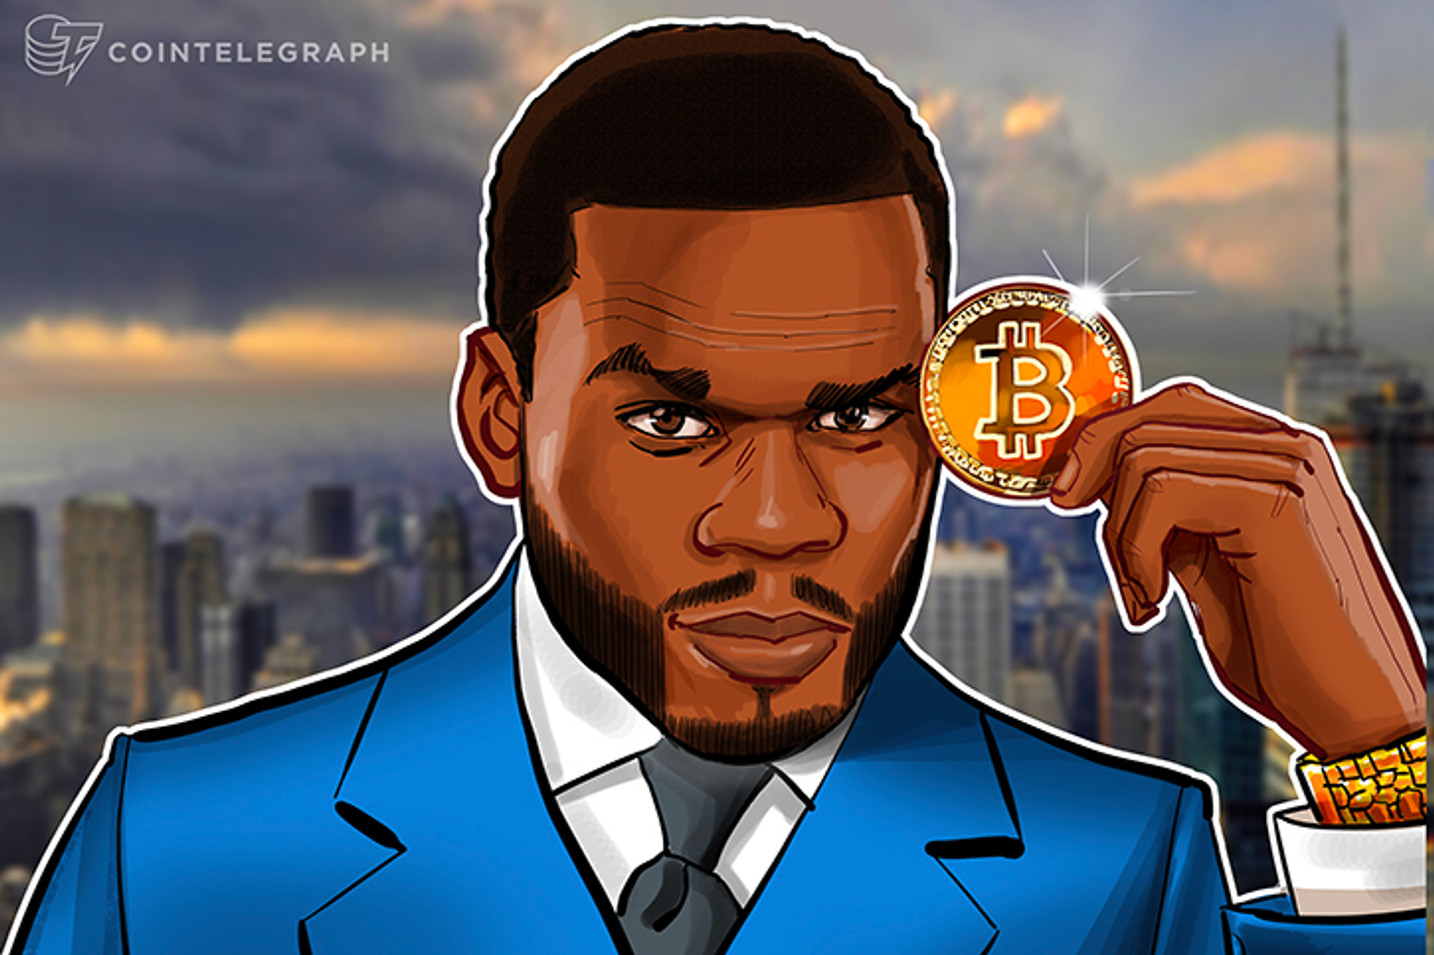 50 Cent Makes Millions Selling Album For Bitcoin